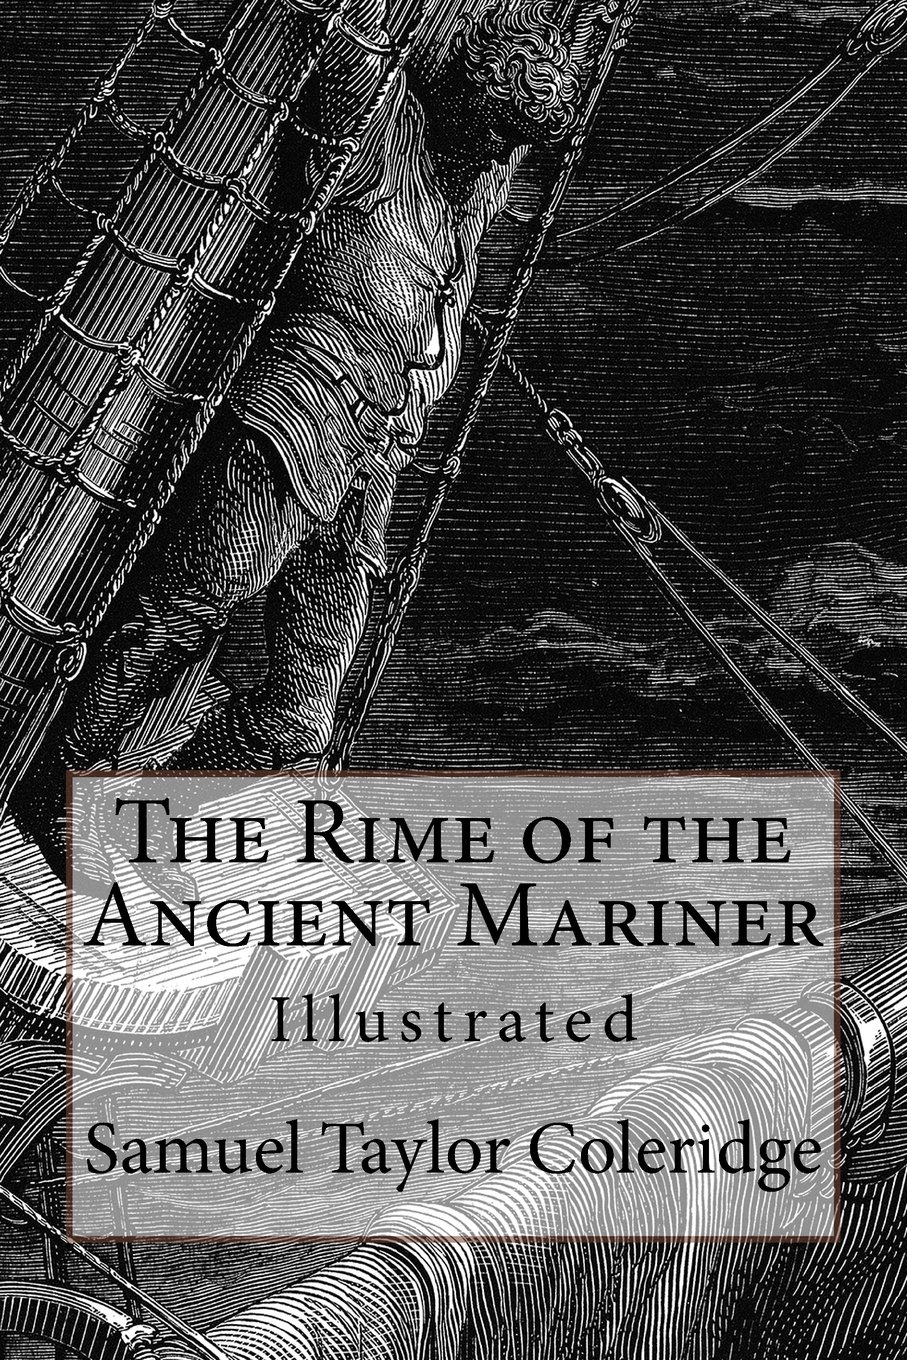 The Rime of the Ancient Mariner: Illustrated: Amazon.co.uk: Samuel ...